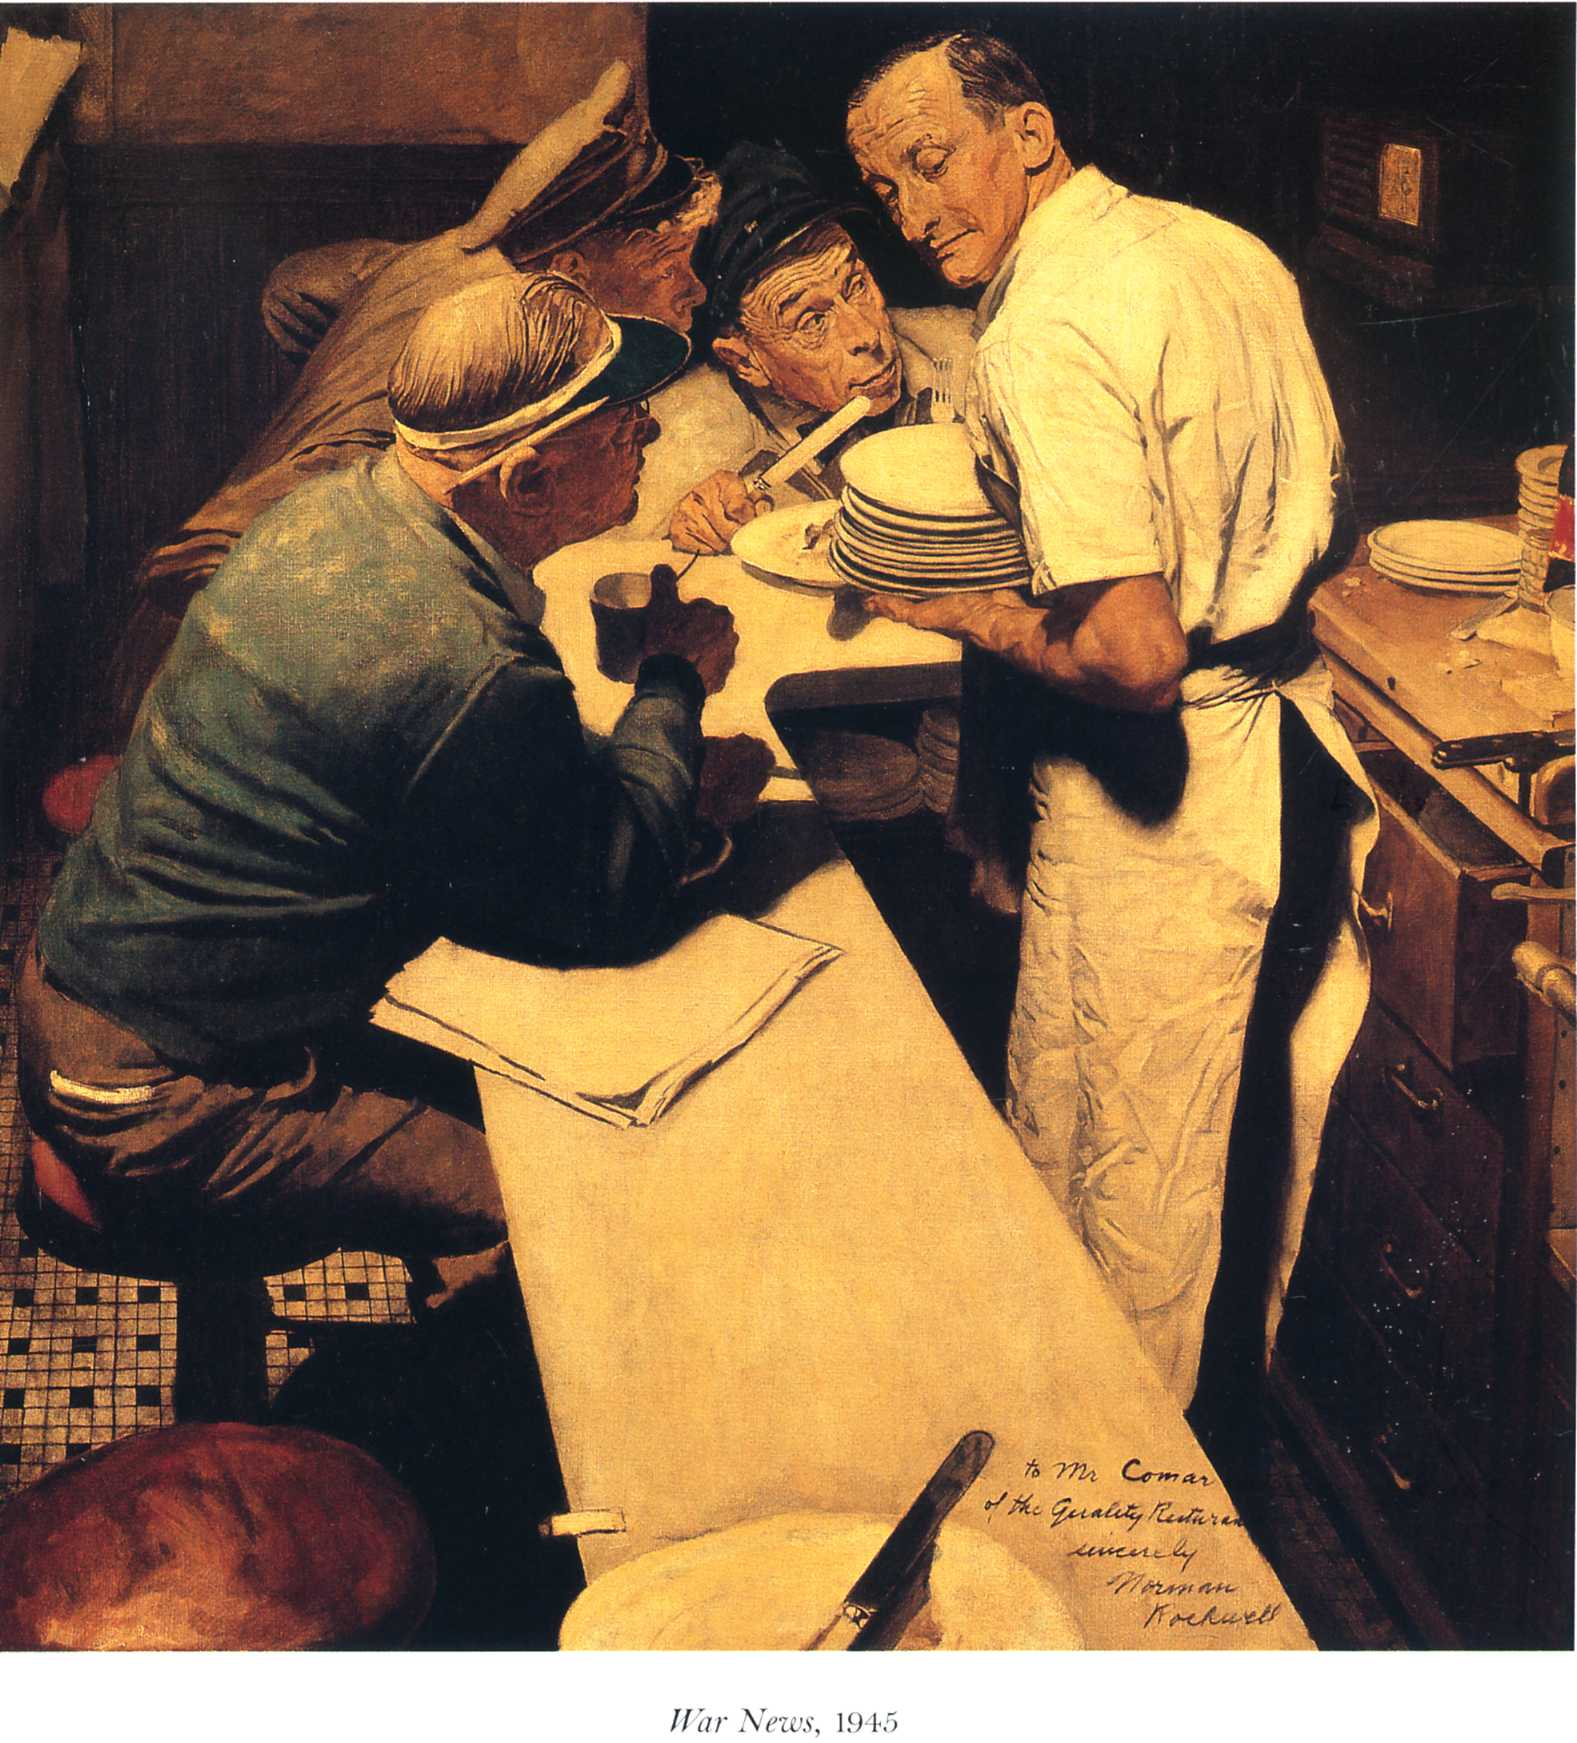 the life of norman rockwell Norman percevel rockwell (february 3, 1894  rockwell is prominent for the cover illustrations of everyday life scenes he created  paintings by norman rockwell.